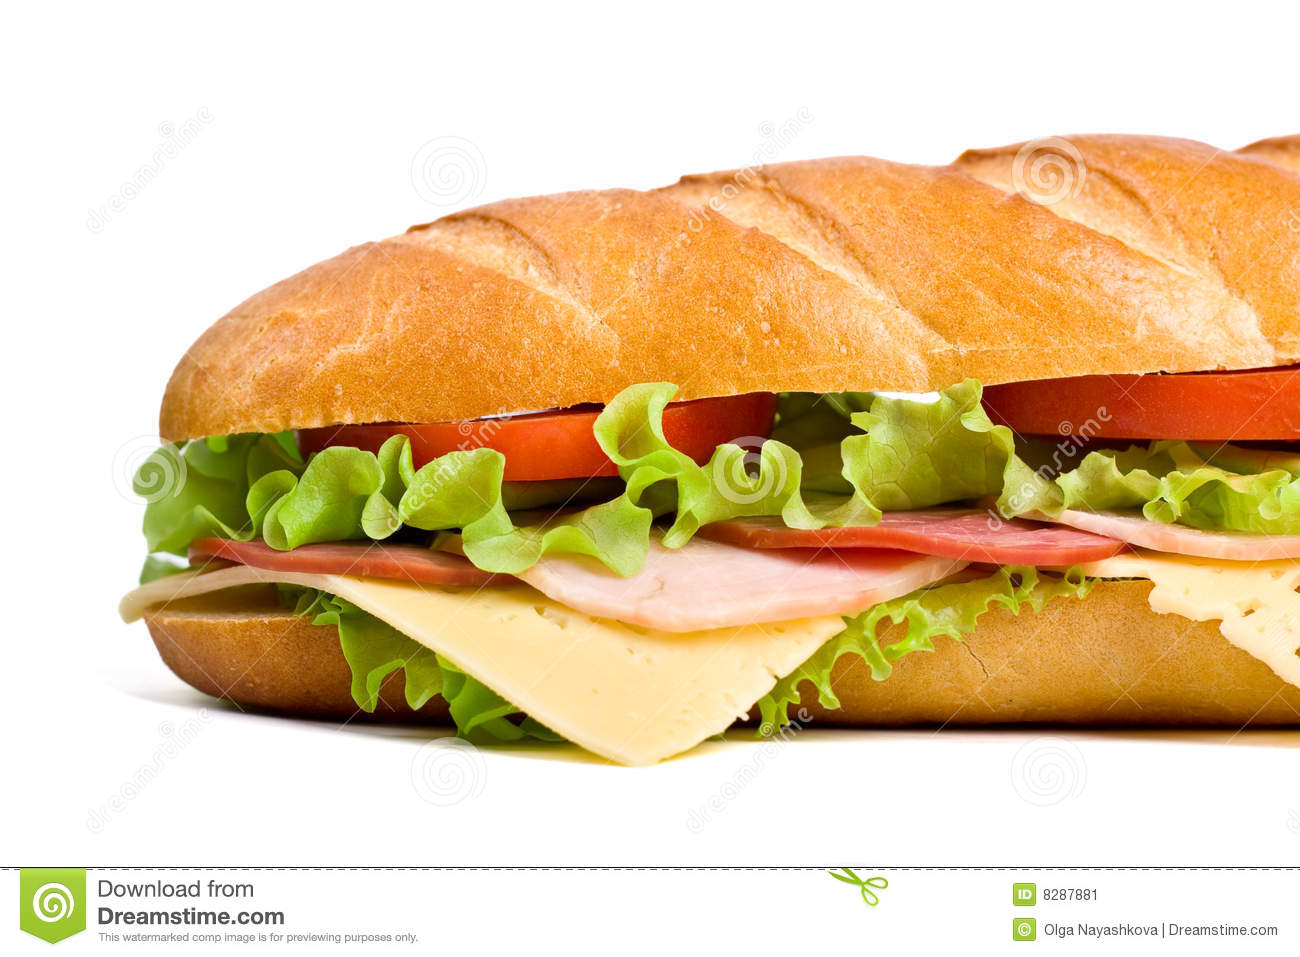 Cured Meats Worsen Copd in addition Royalty Free Stock Photo Long Baguette Sandwich Image11927875 further 568110 also Stock Image Large Salami Cheese Submarine Sandwich Image5358901 further Foods To Avoid During Pregnancy. on turkey cold cuts